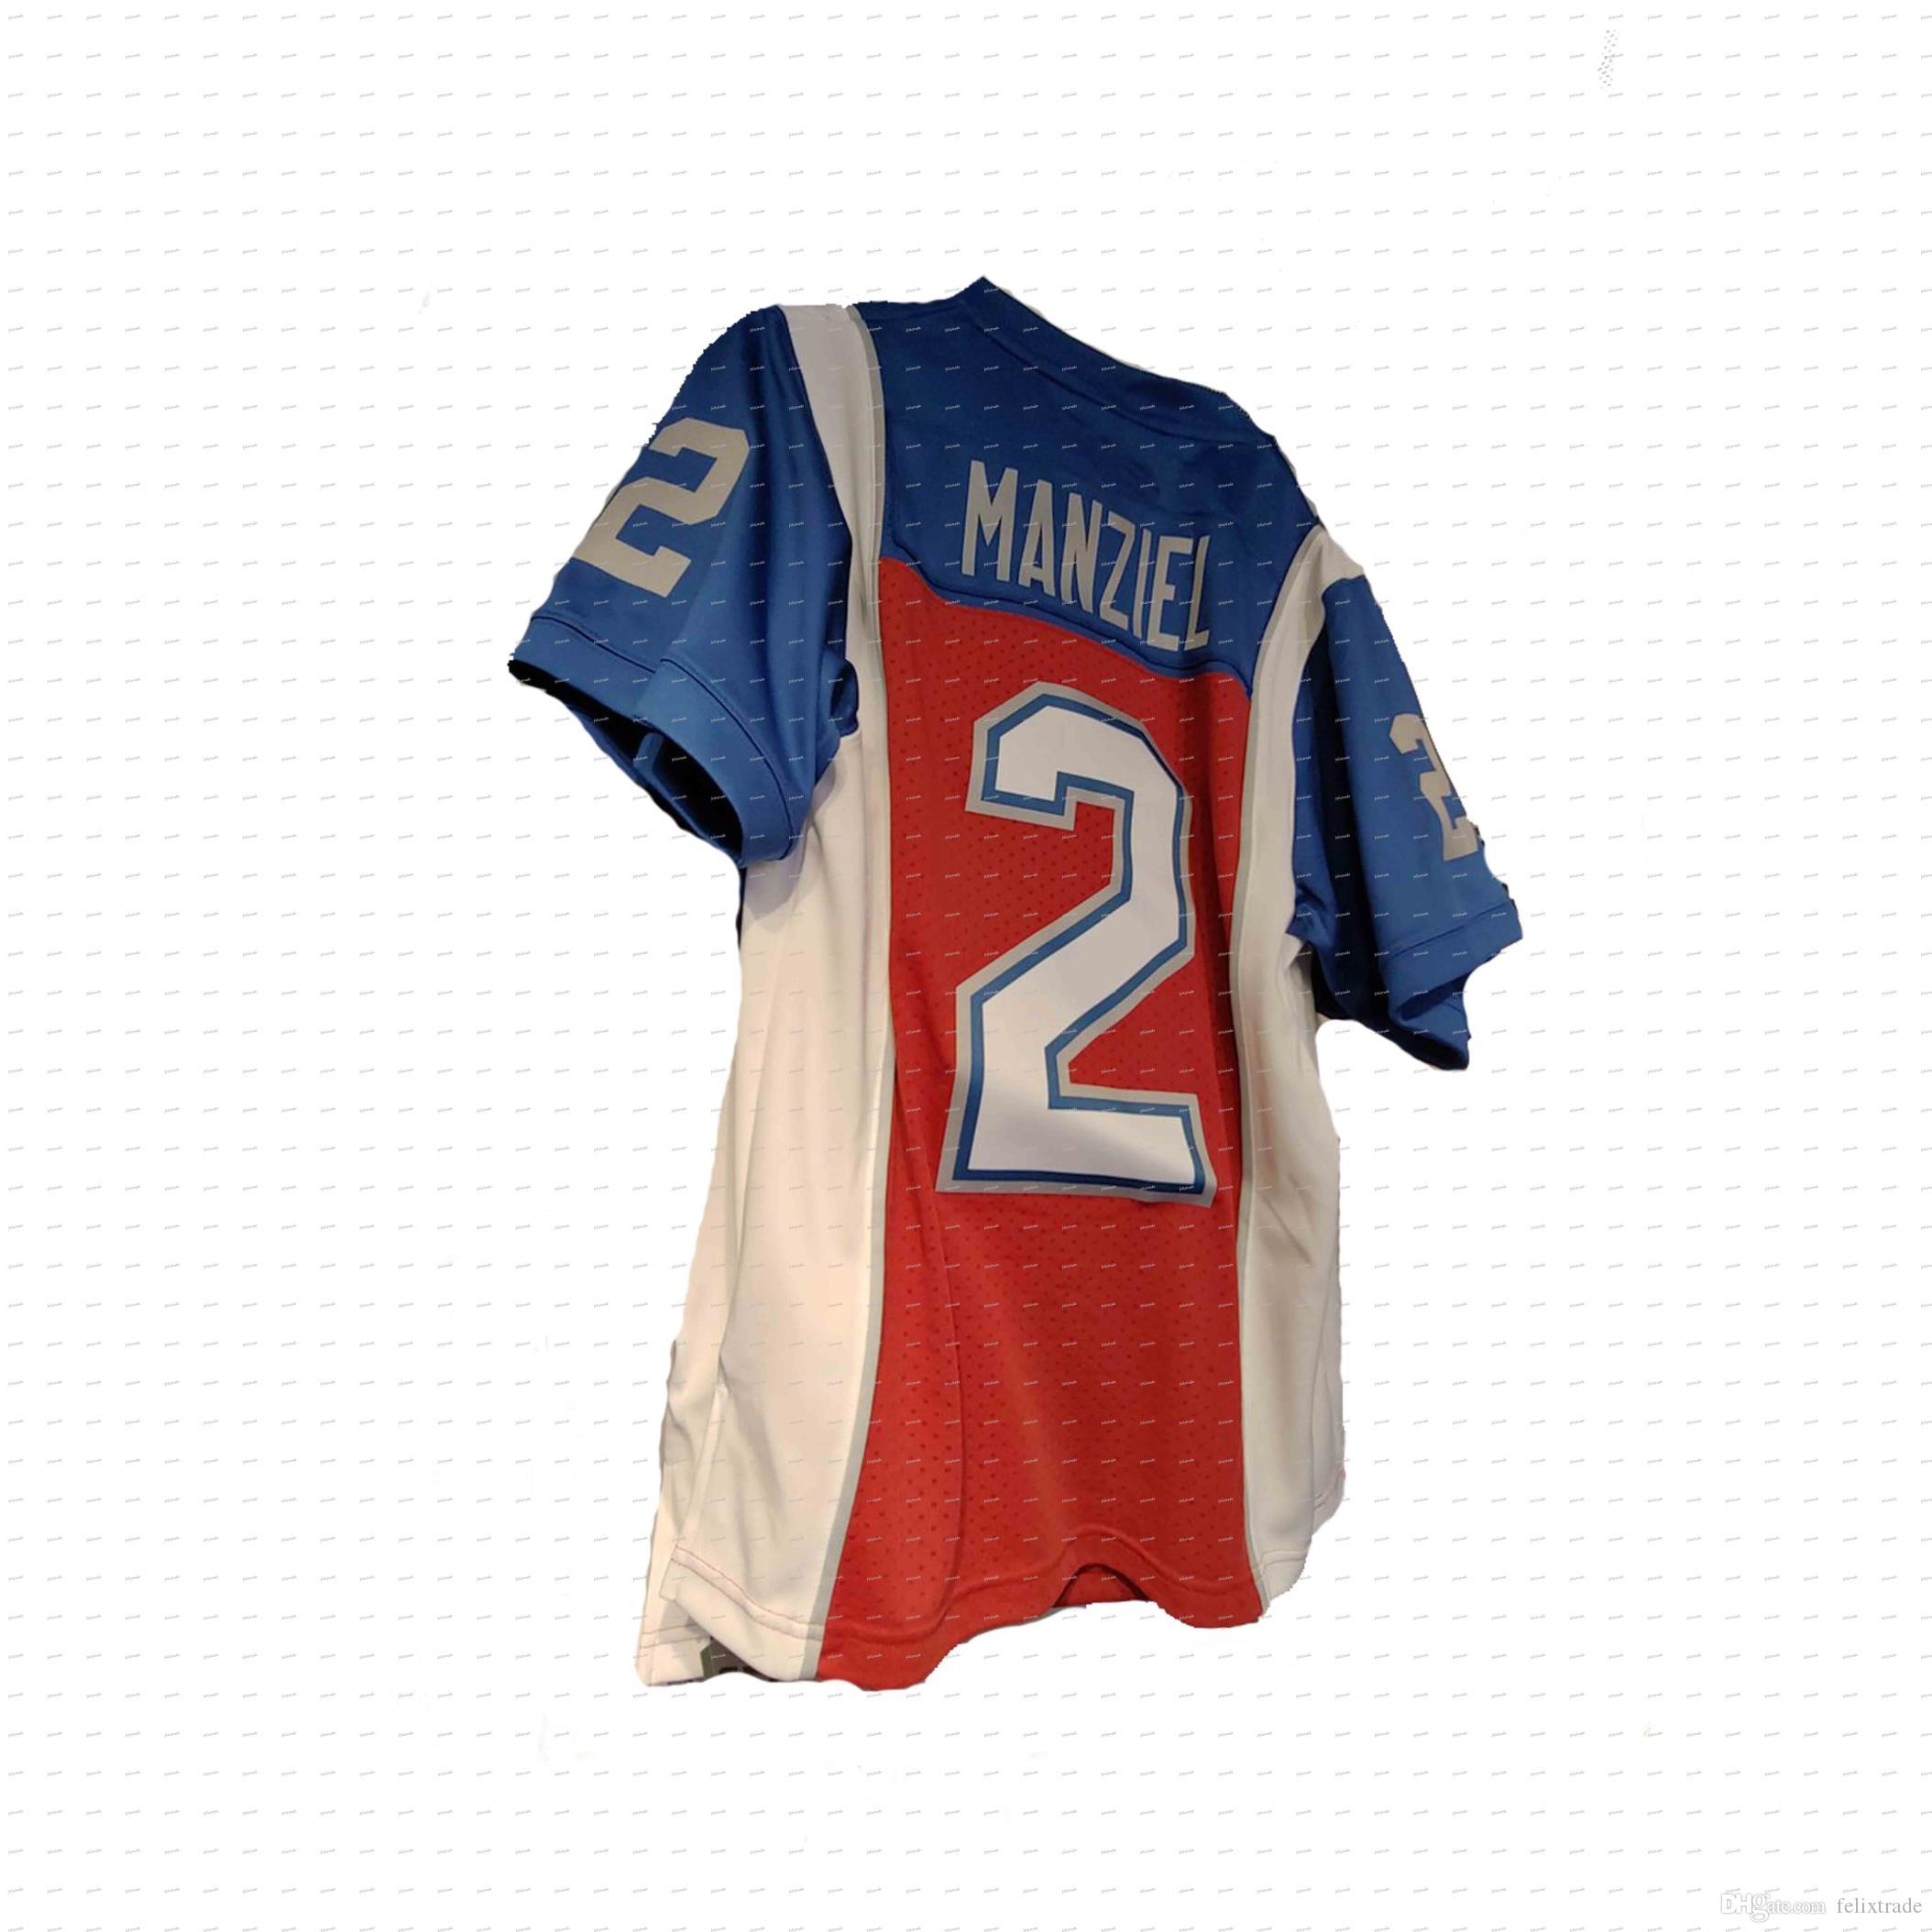 Johnny Manziel  2 Montreal Alouettes Football Jersey Double Stiched Name    Number For Men Women Youth Customizable UK 2019 From Felixtrade 592d52e429